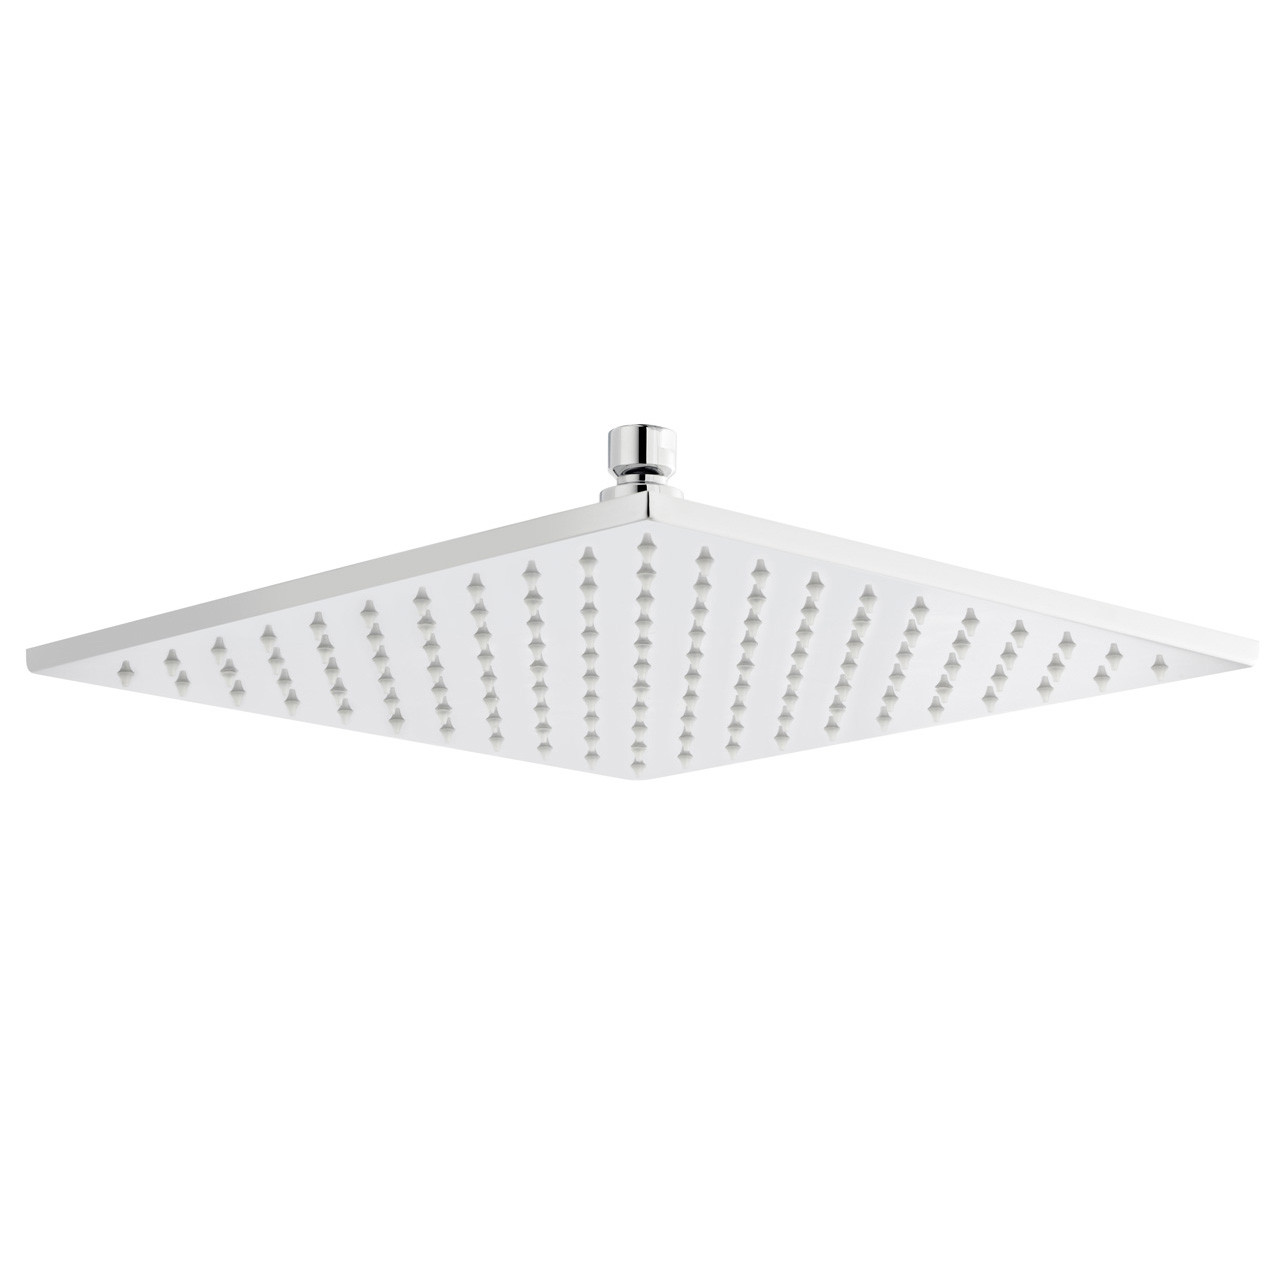 Ultra LED 200mm Square Fixed Shower Head - STY070